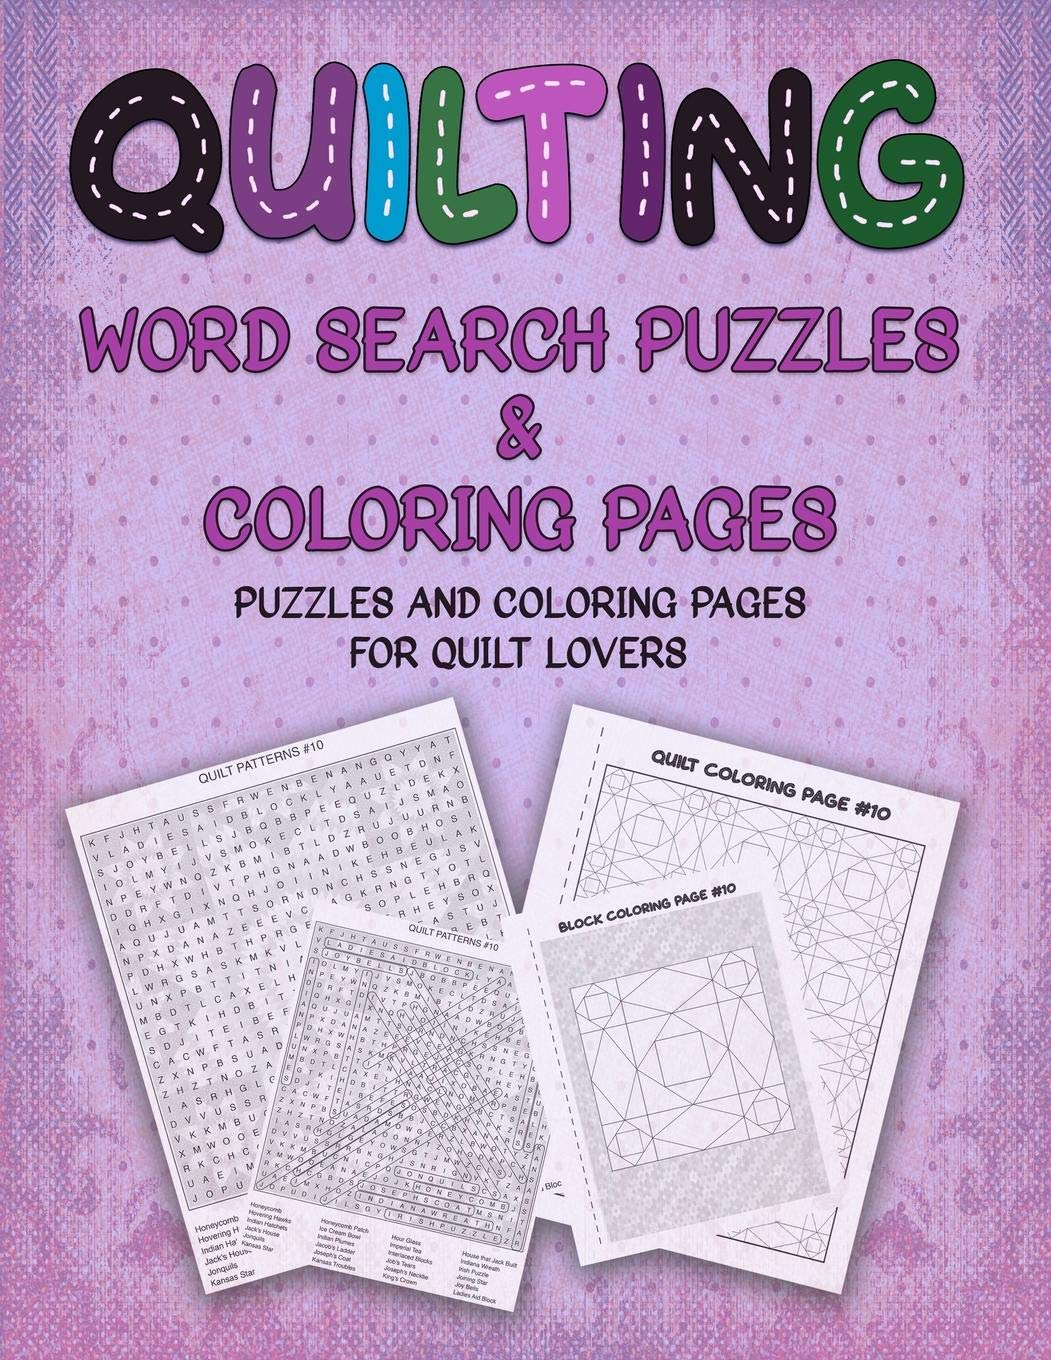 14 free St Patrick's day printable coloring pages, puzzles & other ... | 1360x1051